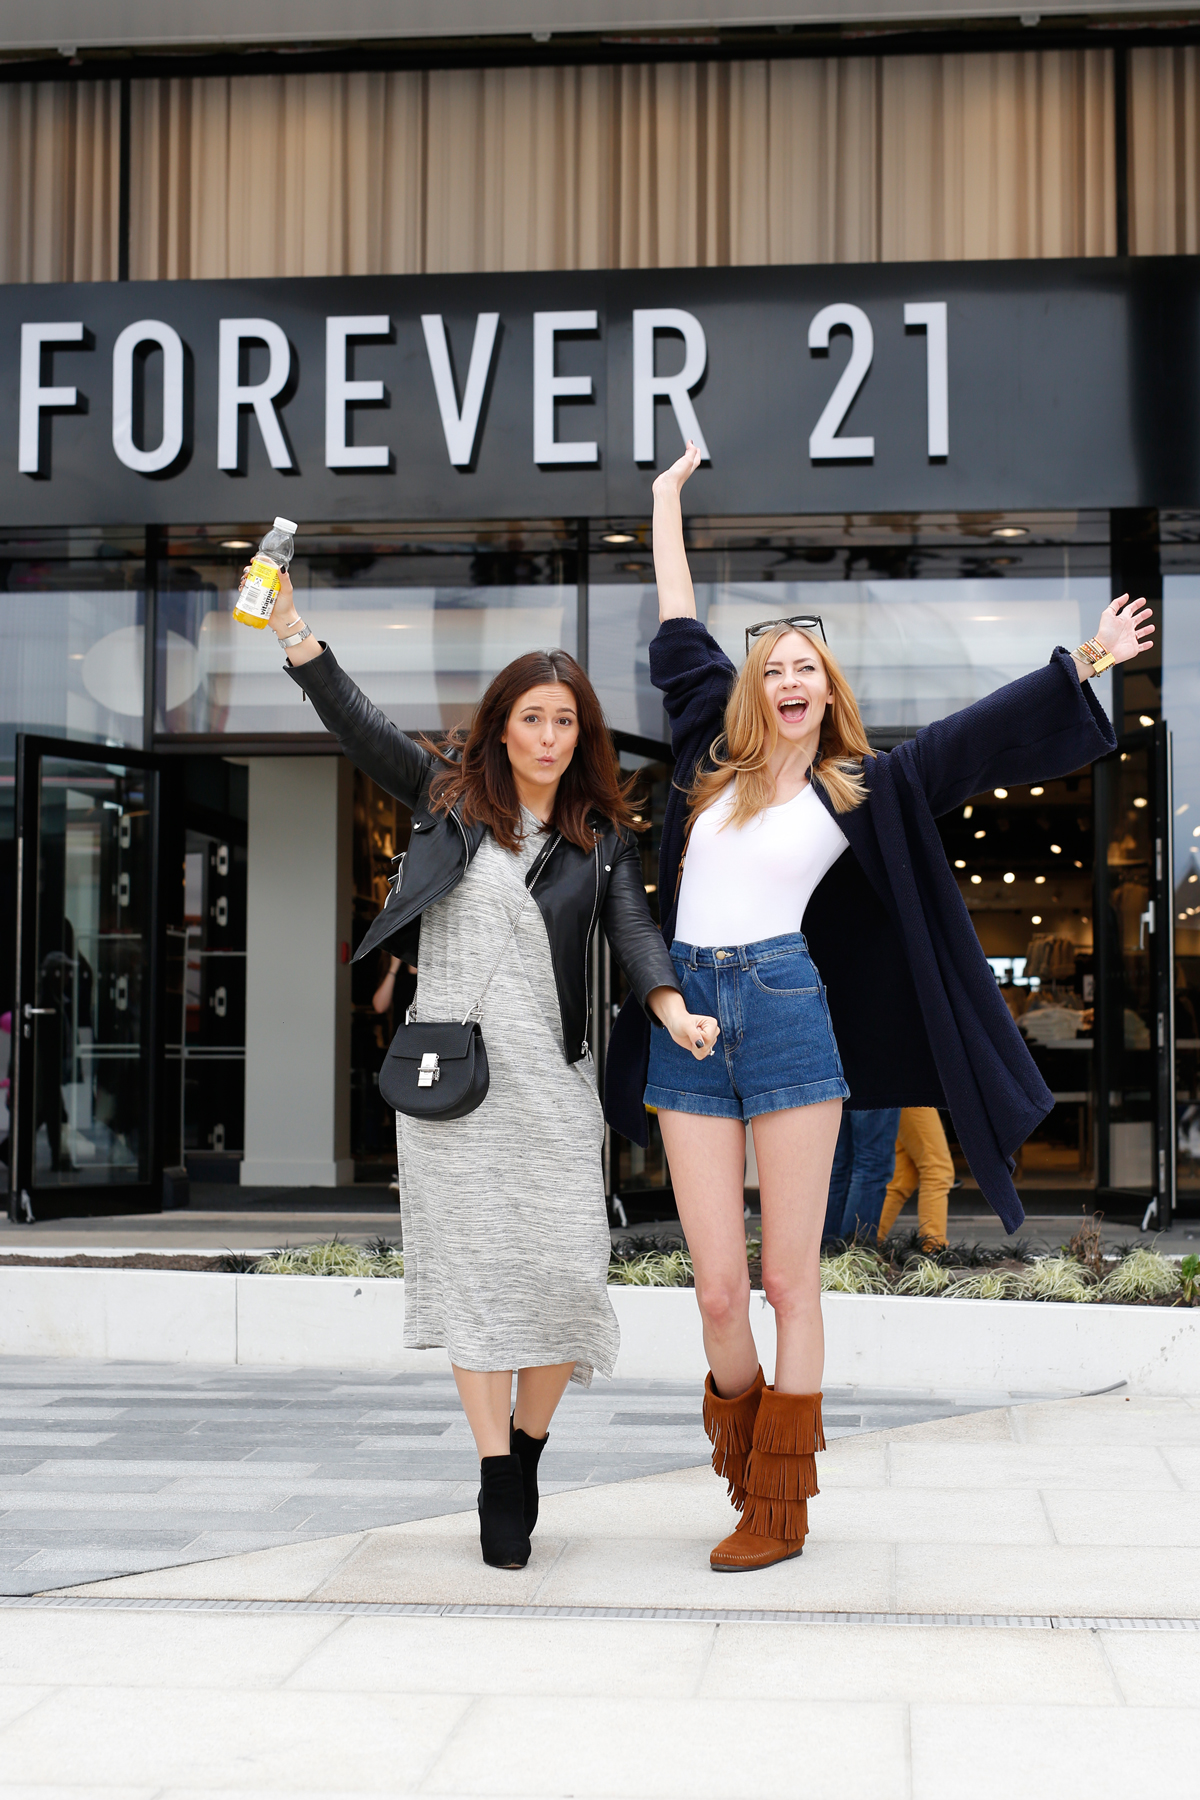 Forever 21 Store Opening in Bochum - Impressions || How I met my outfit by Dana Lohmüller with somegoodspirits